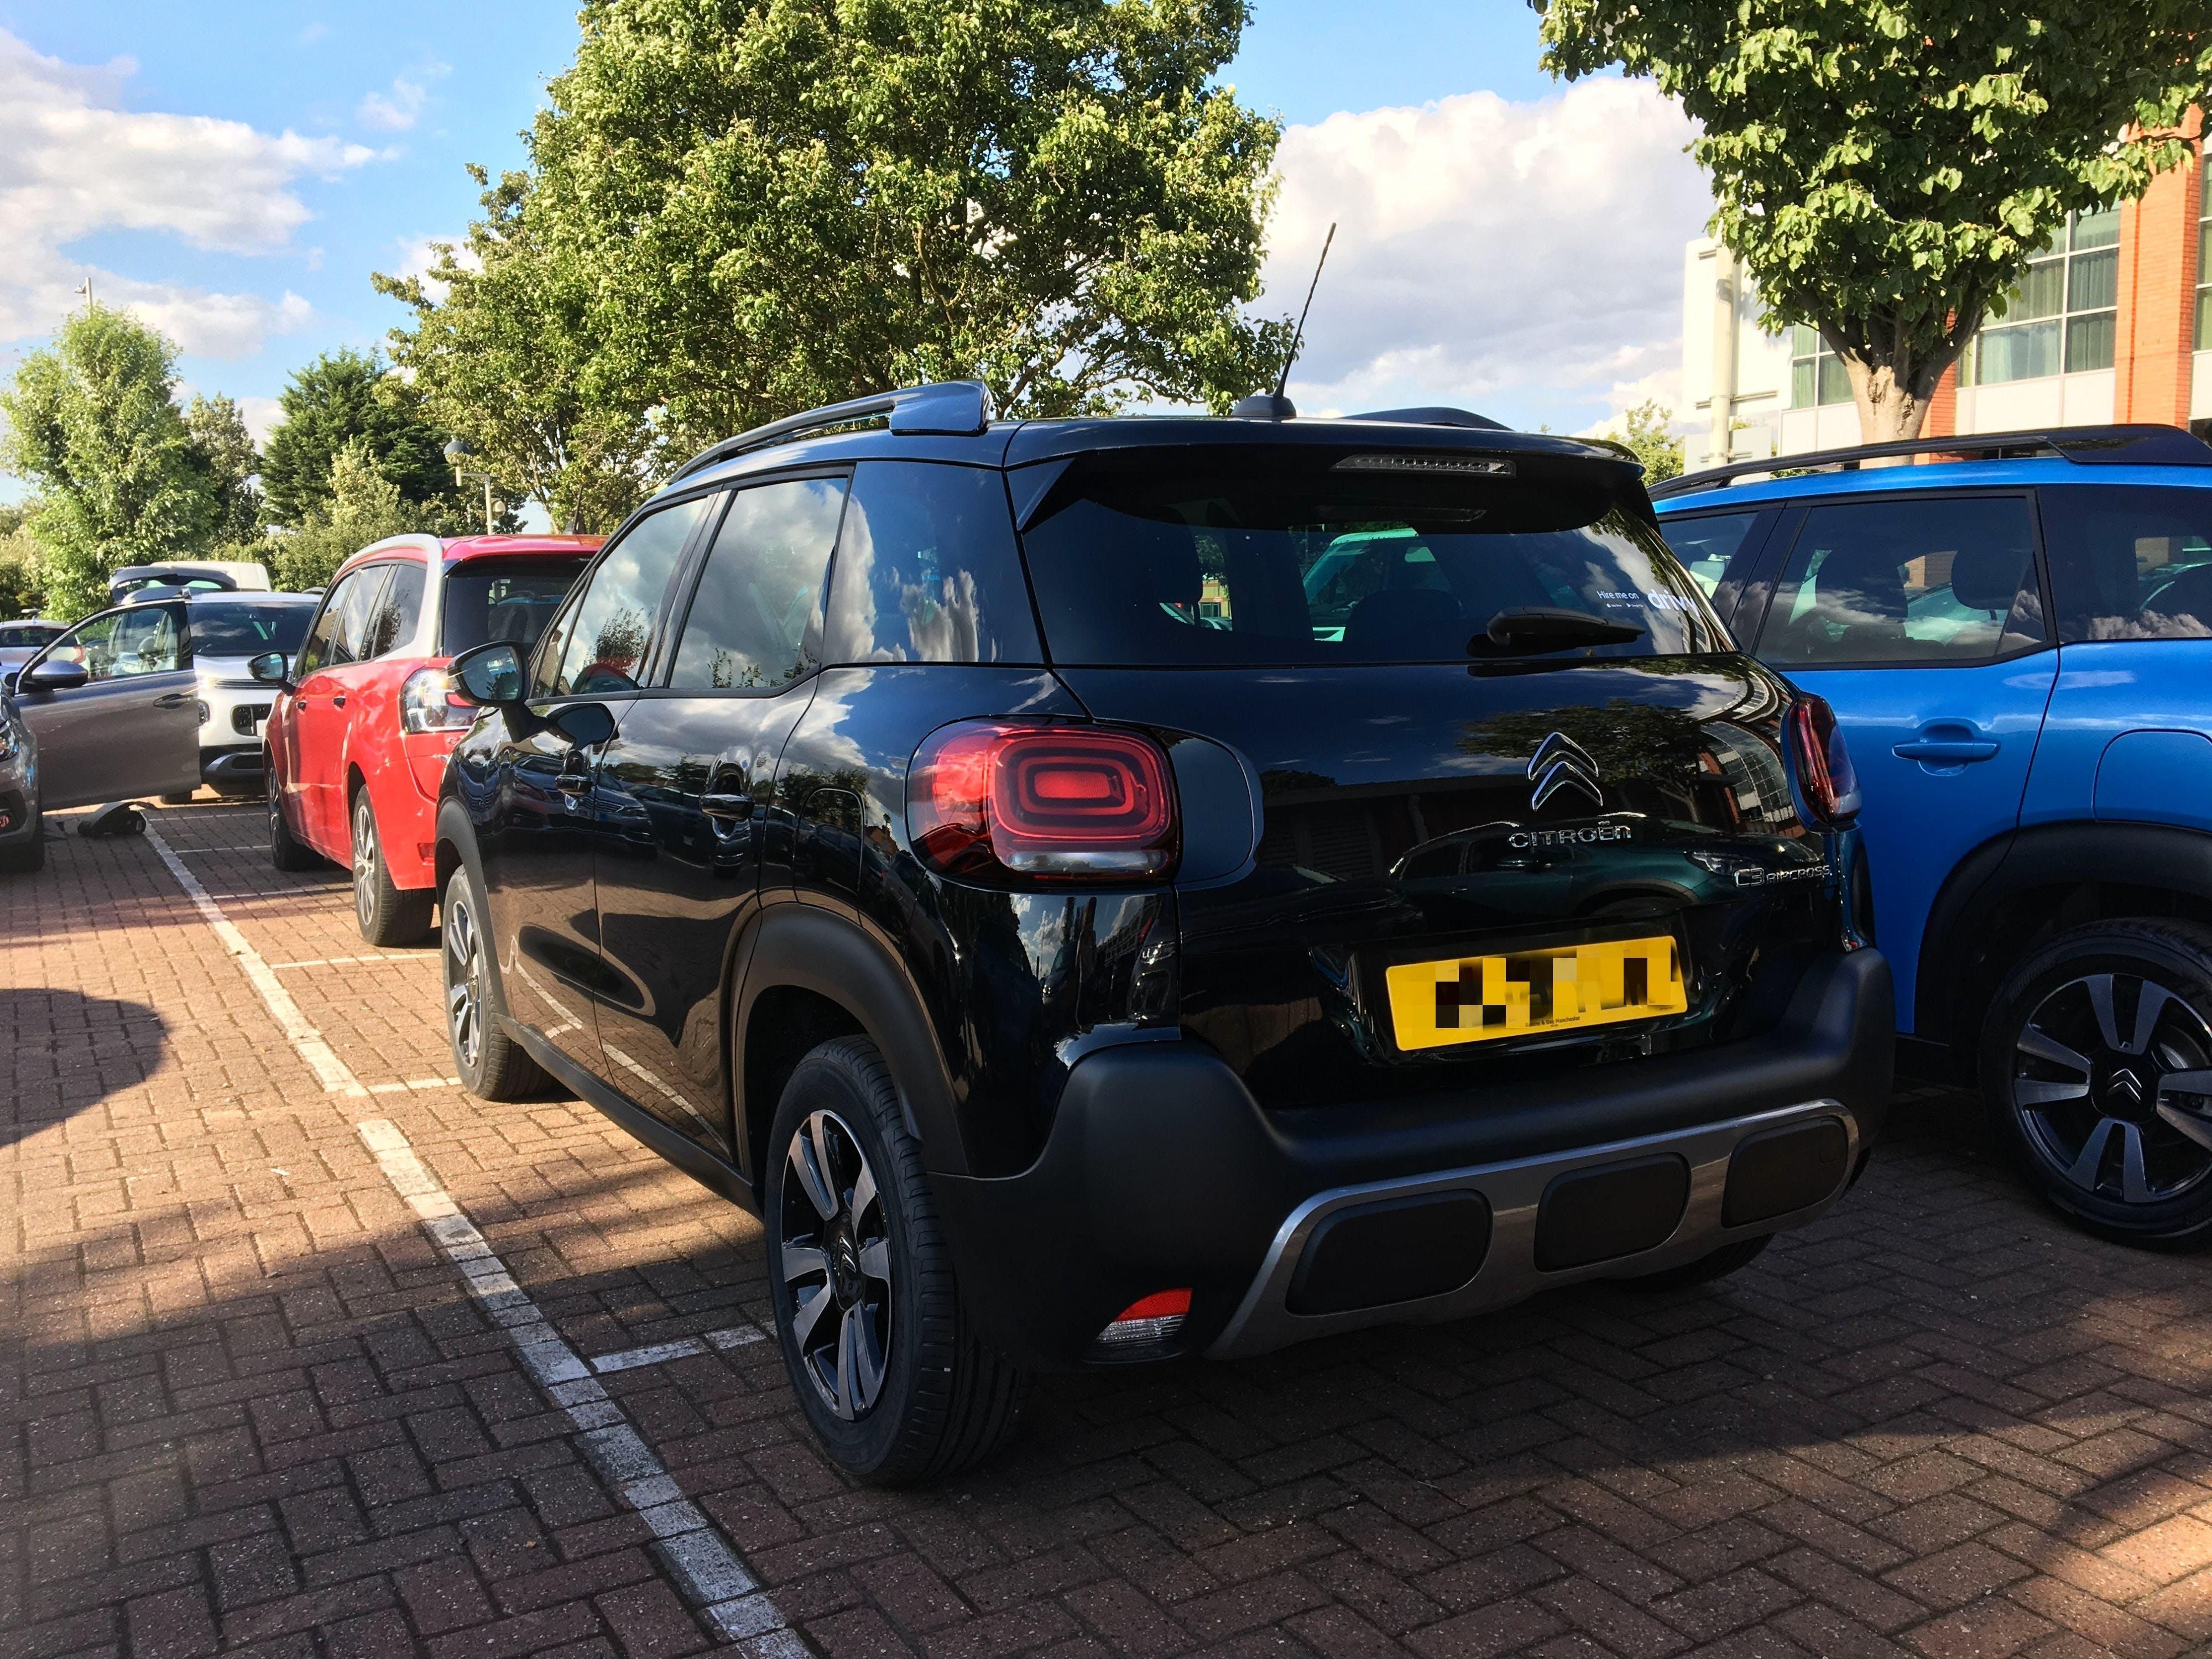 Citroen C3 Aircross LEF with Cruise control